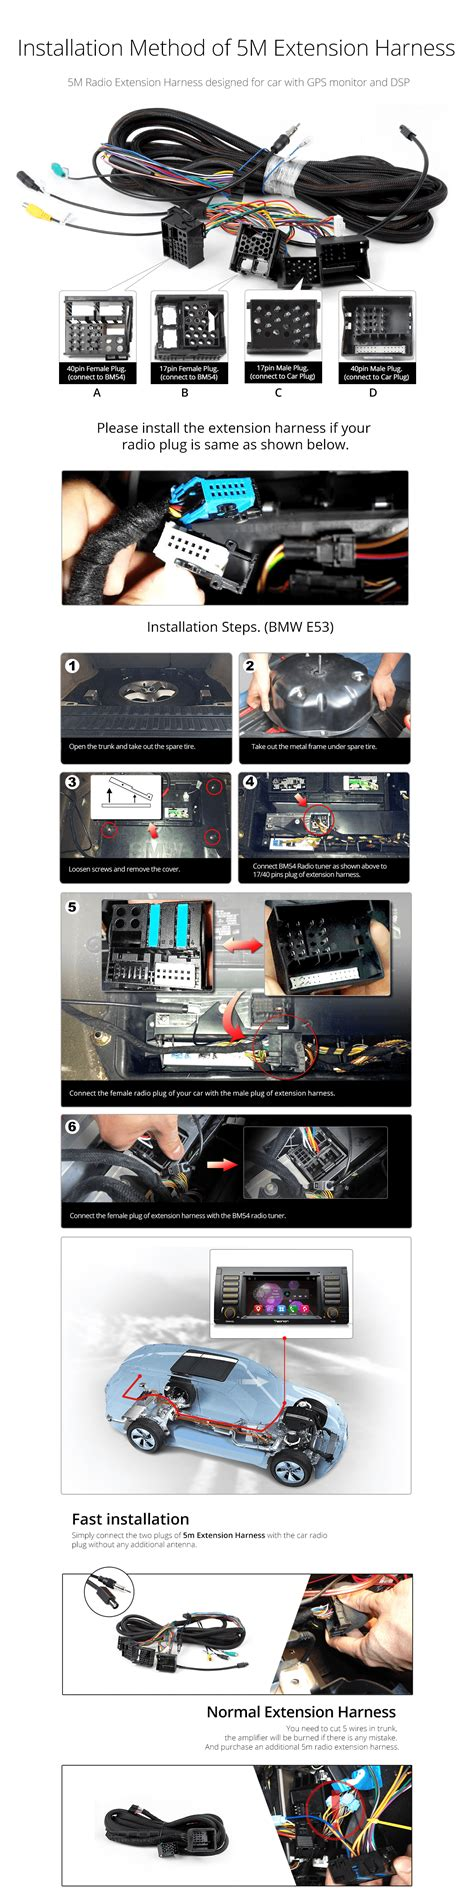 bmw e39 lighting wiring diagram bmw e39 rear speakers